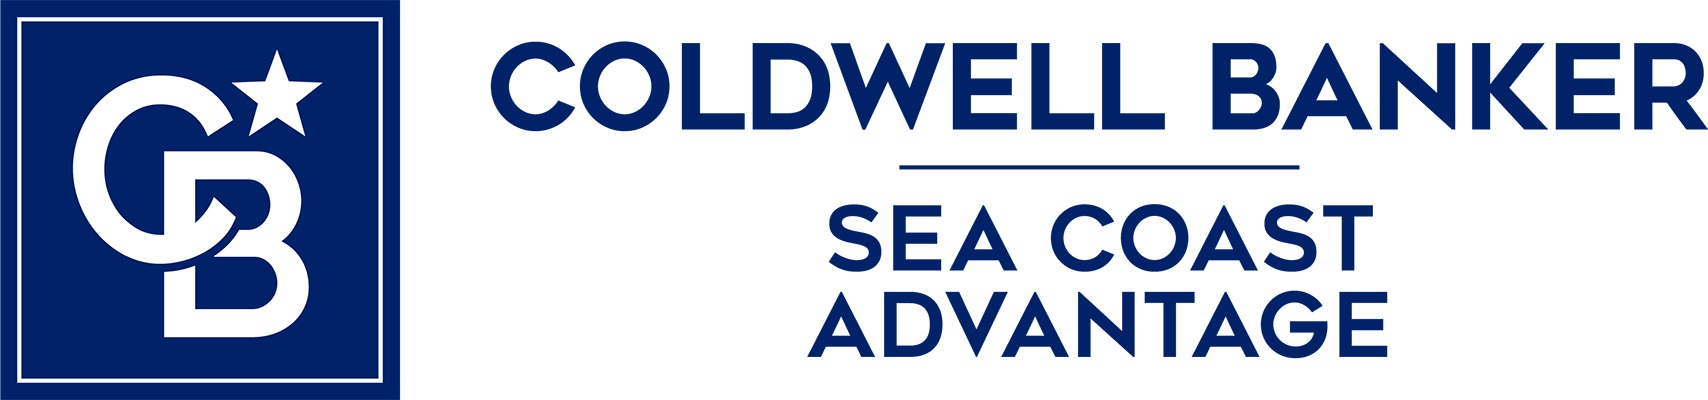 Ellen Herring - Coldwell Banker Sea Coast Advantage Realty